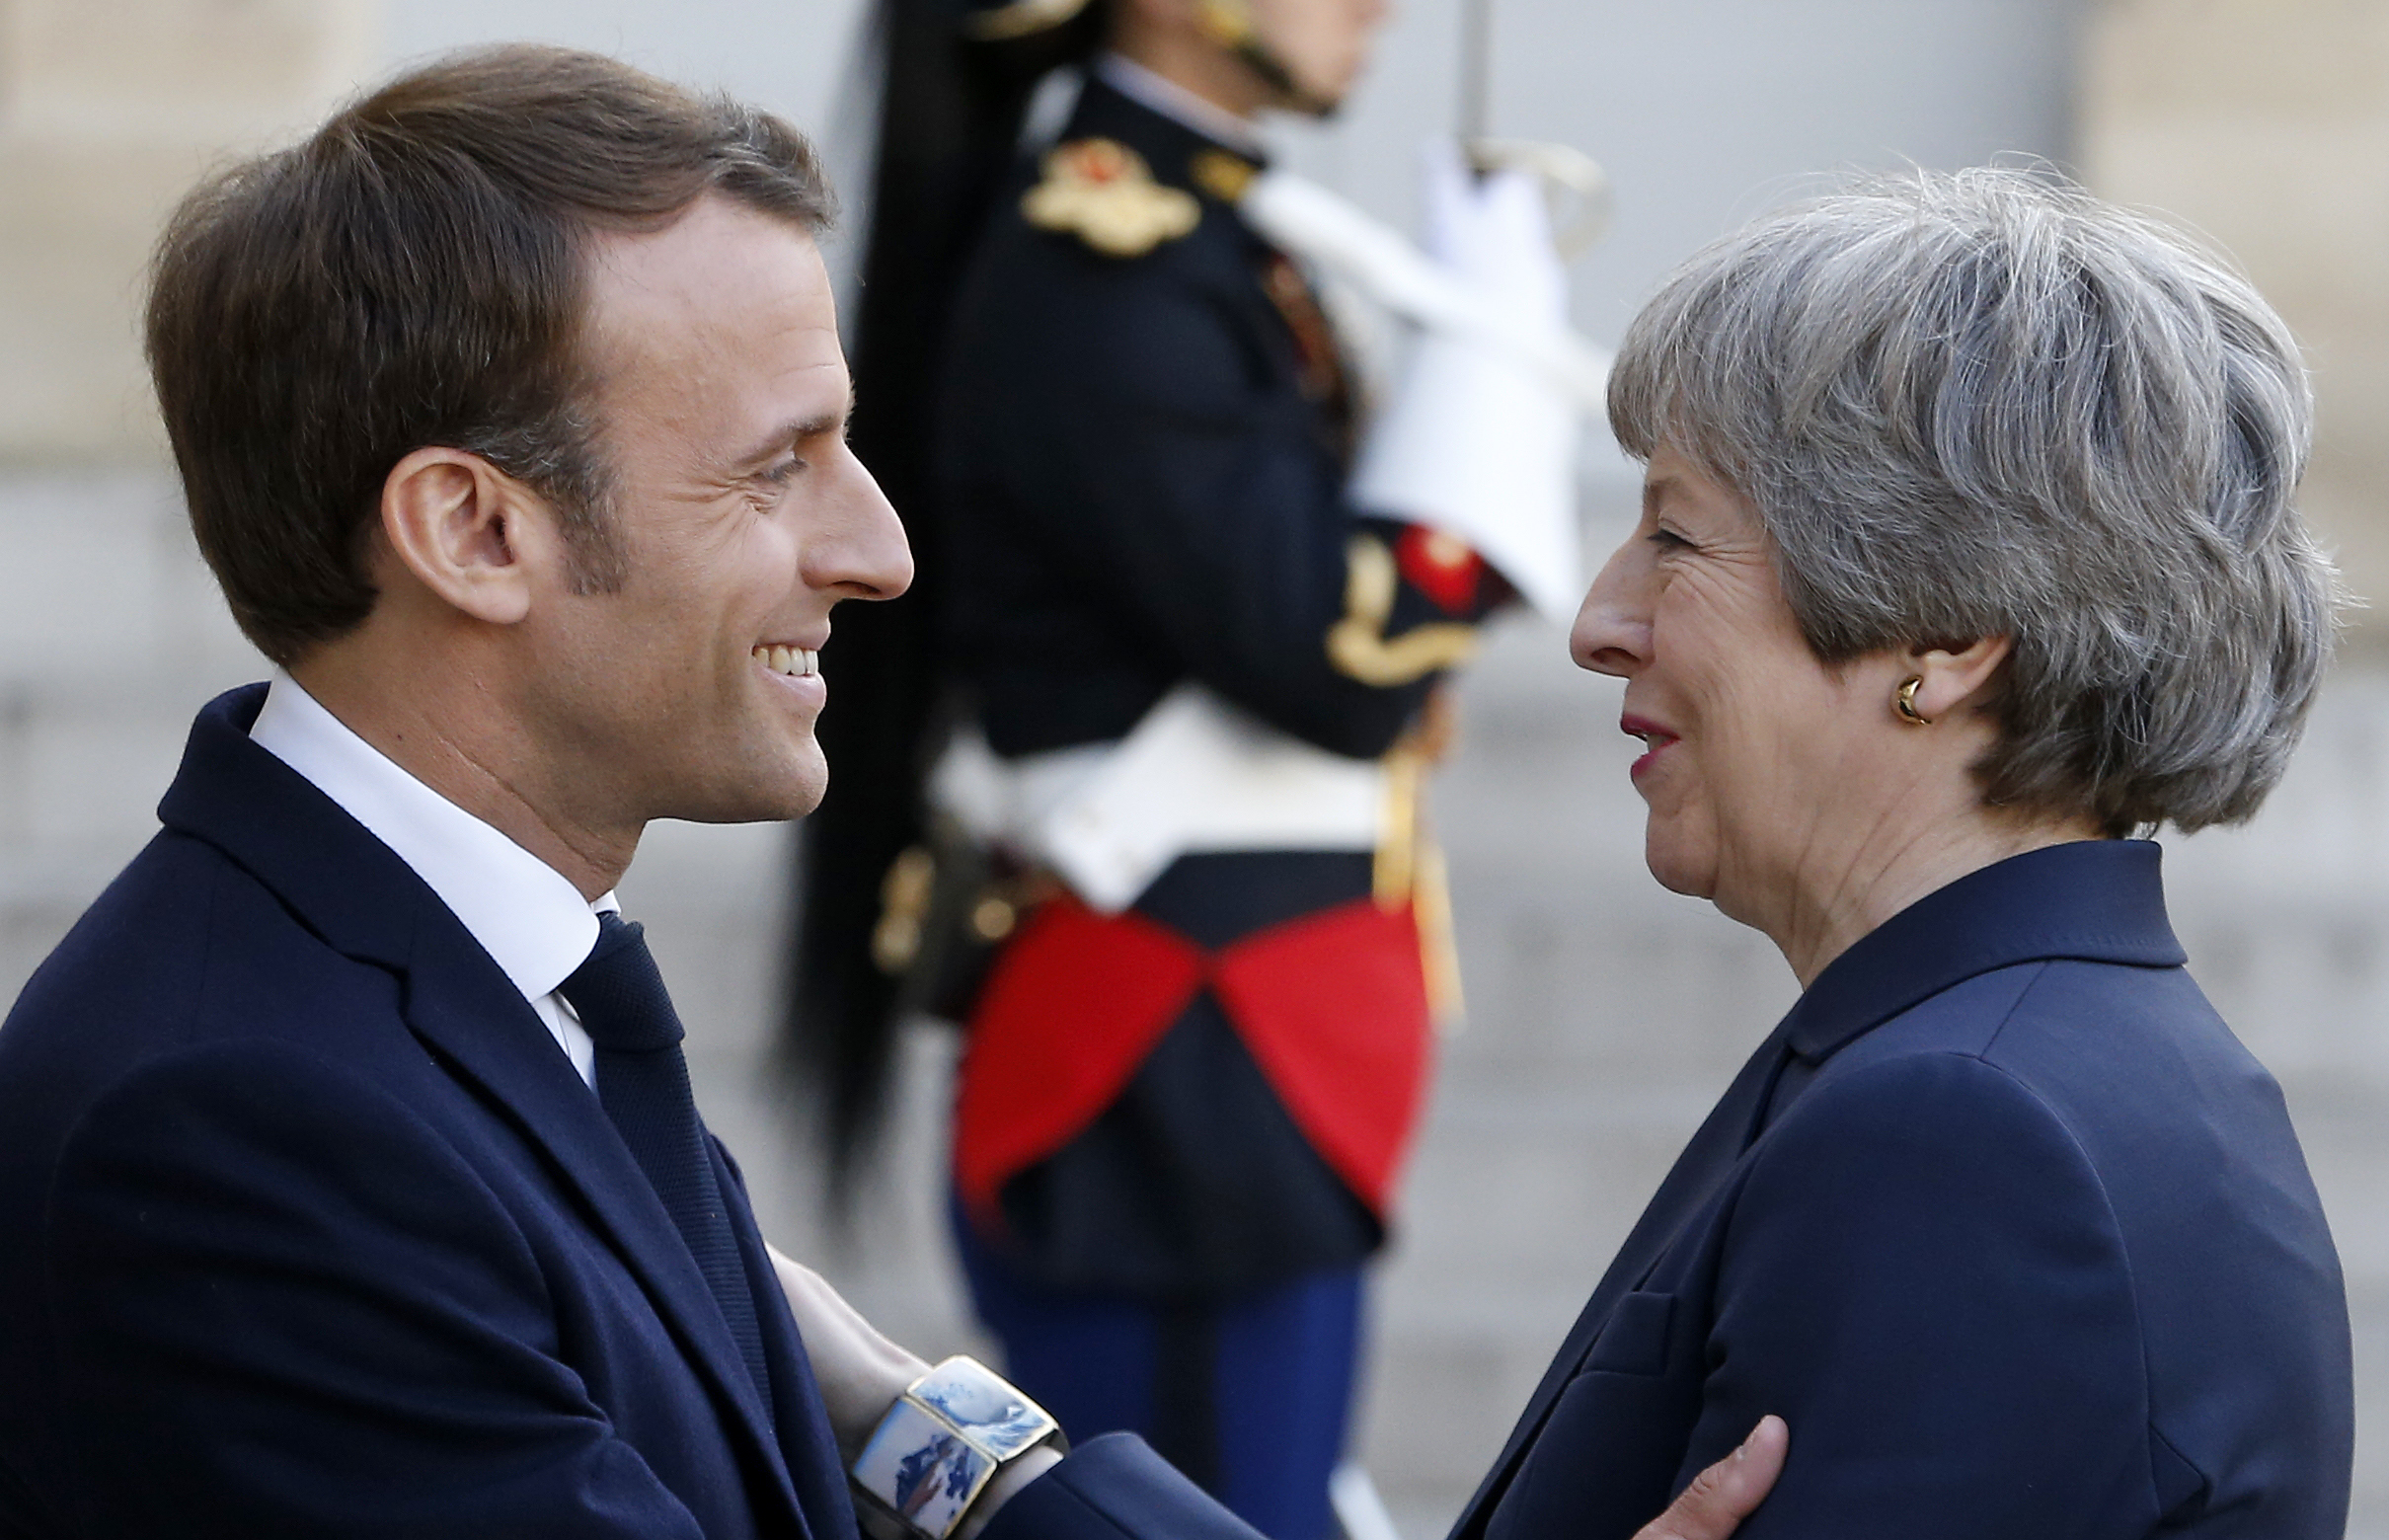 Macron and May greet each other in Paris on Tuesday.